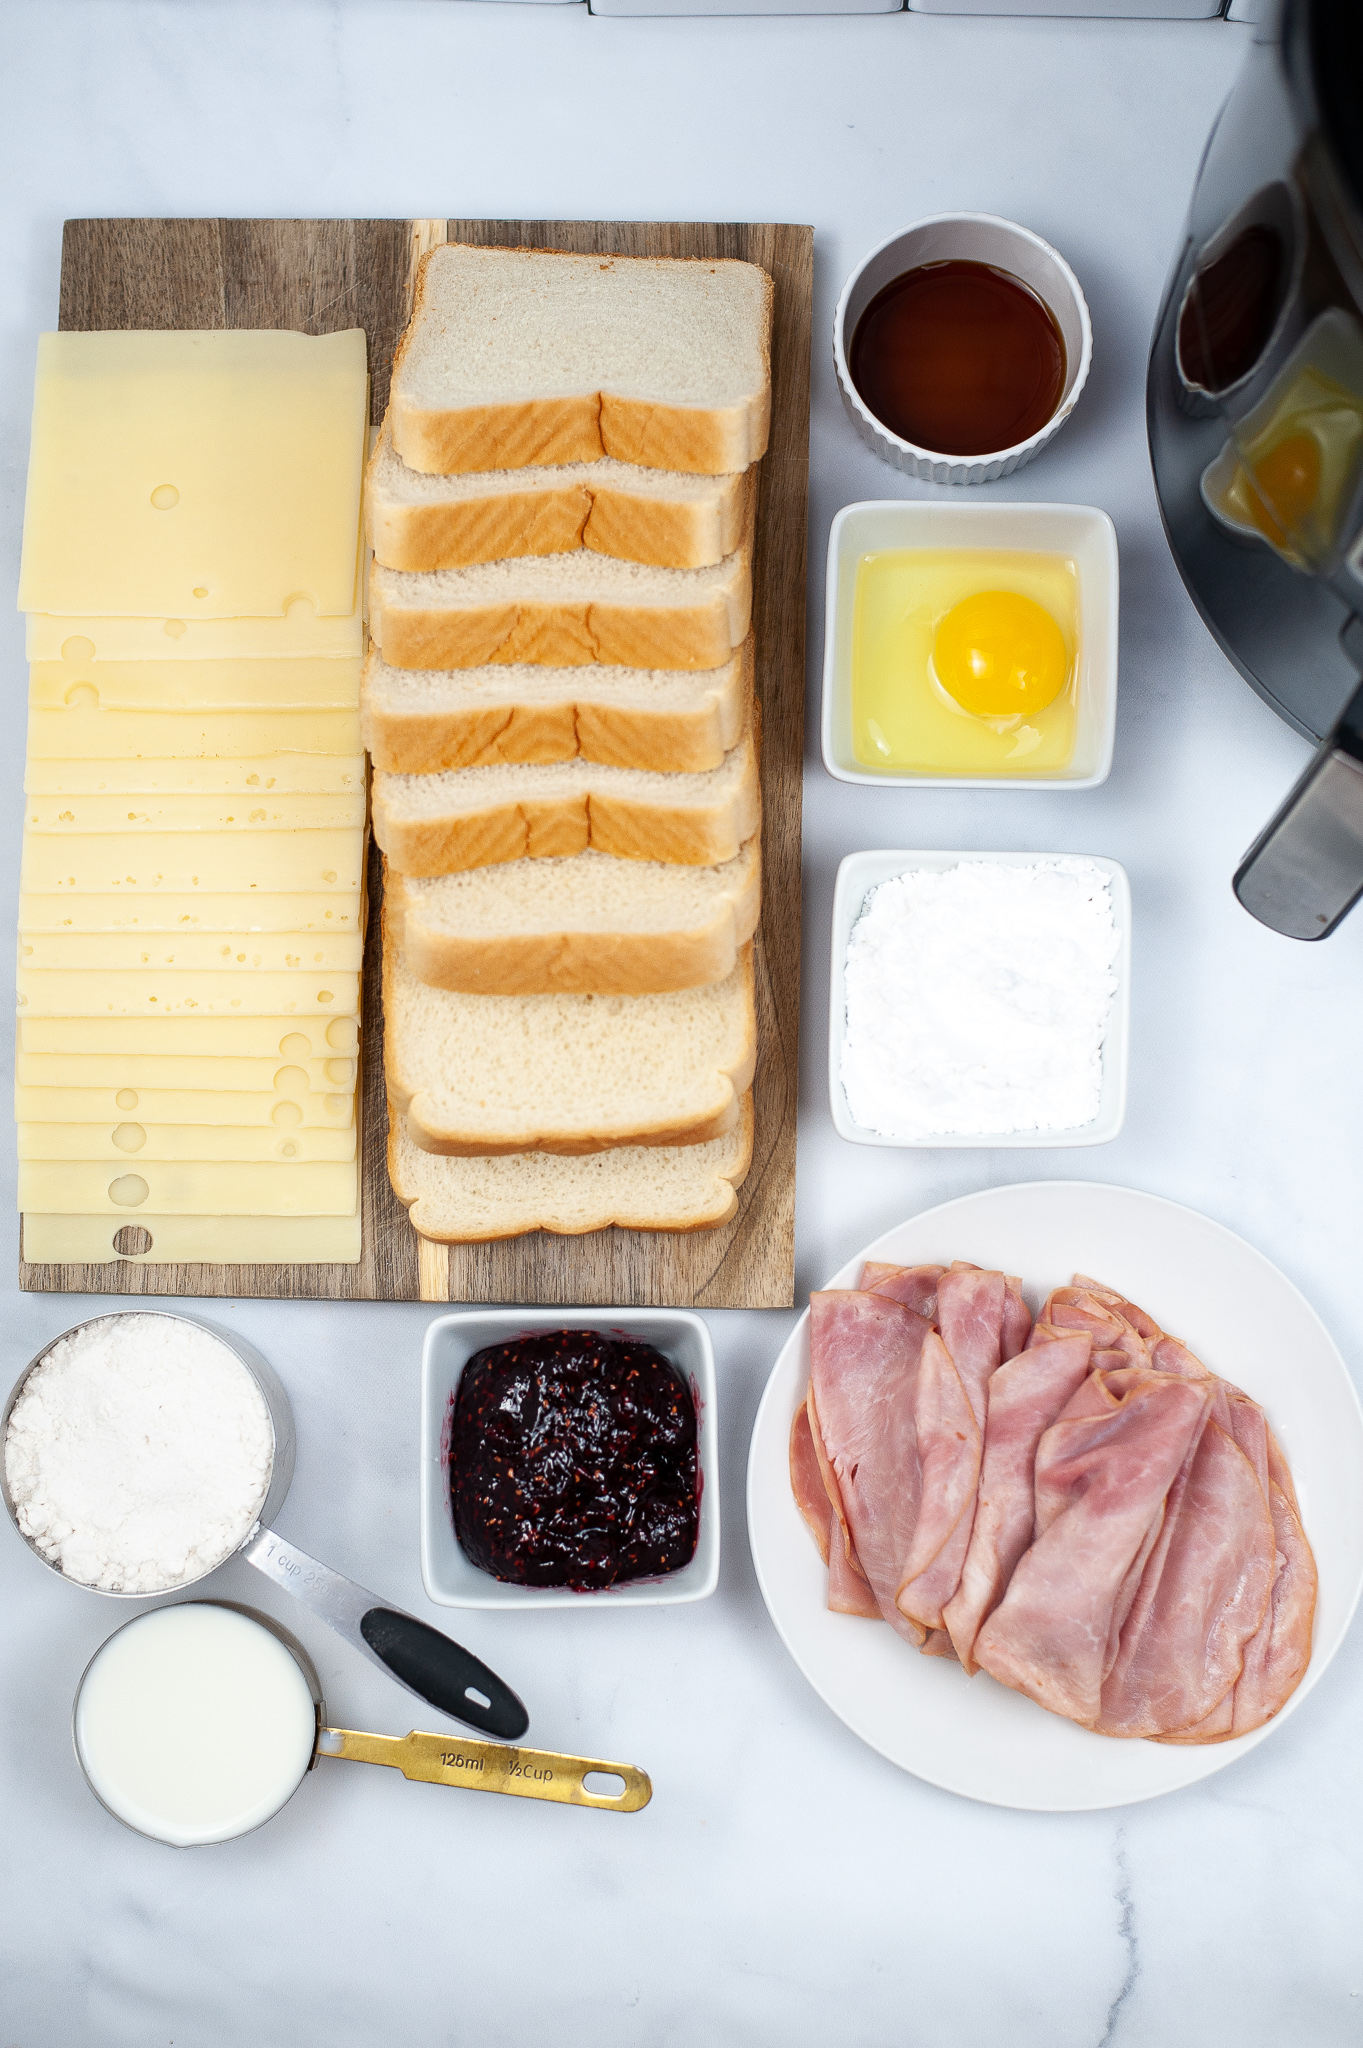 Turkey, cheese, bread, eggs, jam and ingredients to make sandwich.